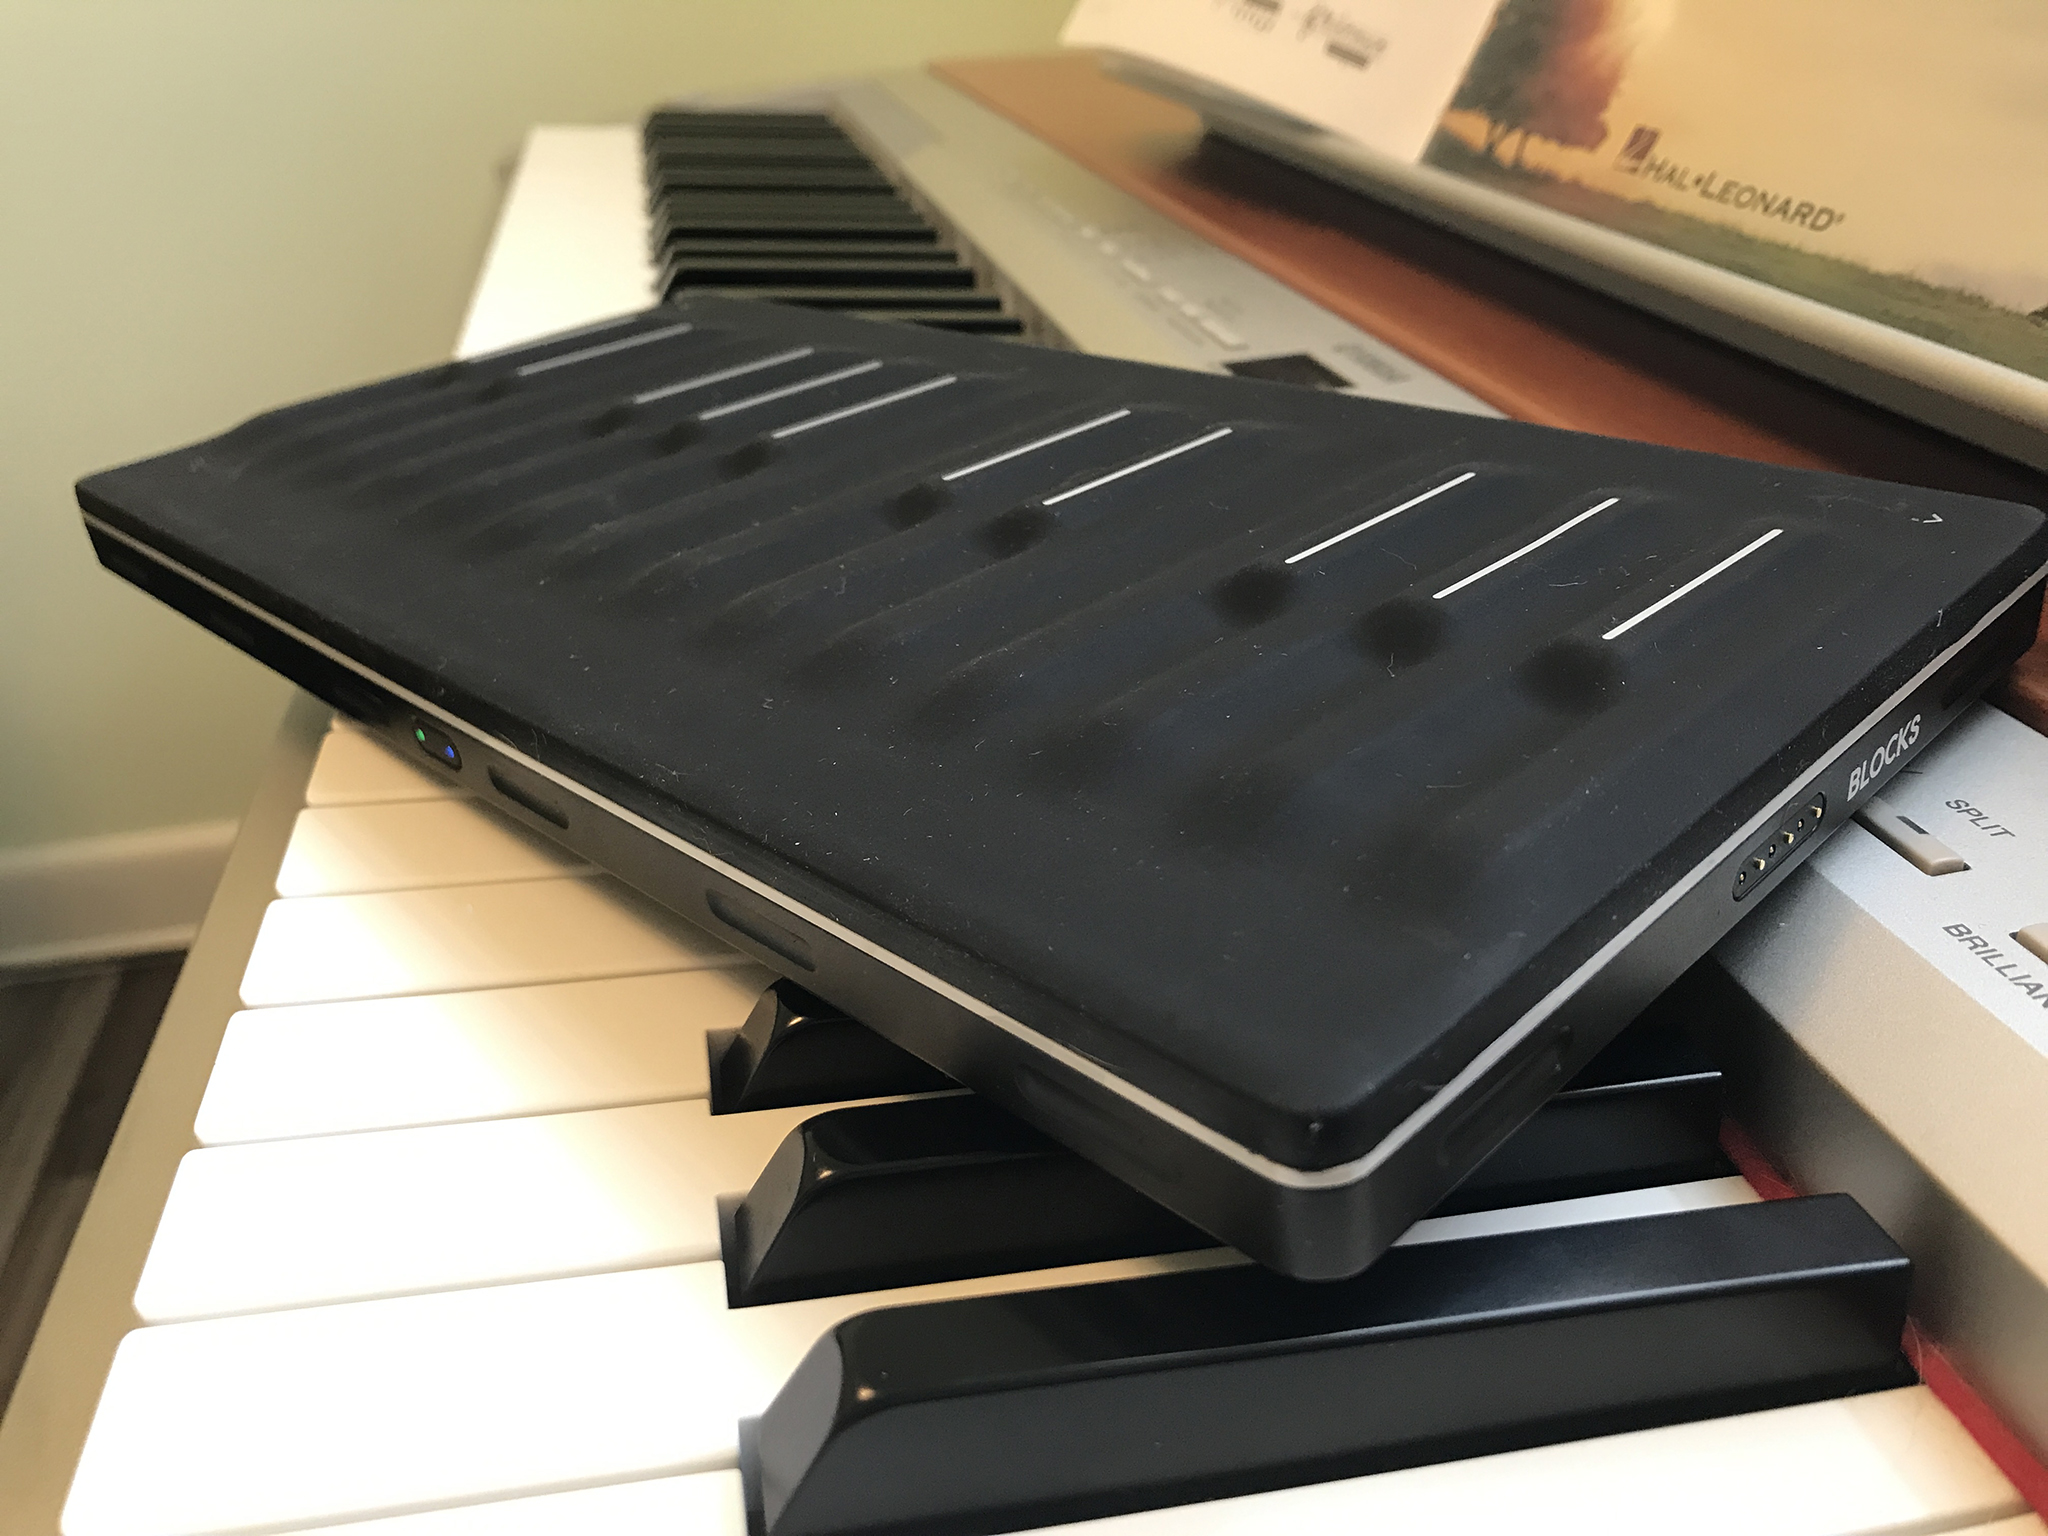 ROLI Seaboard Block review A full band in a squishy